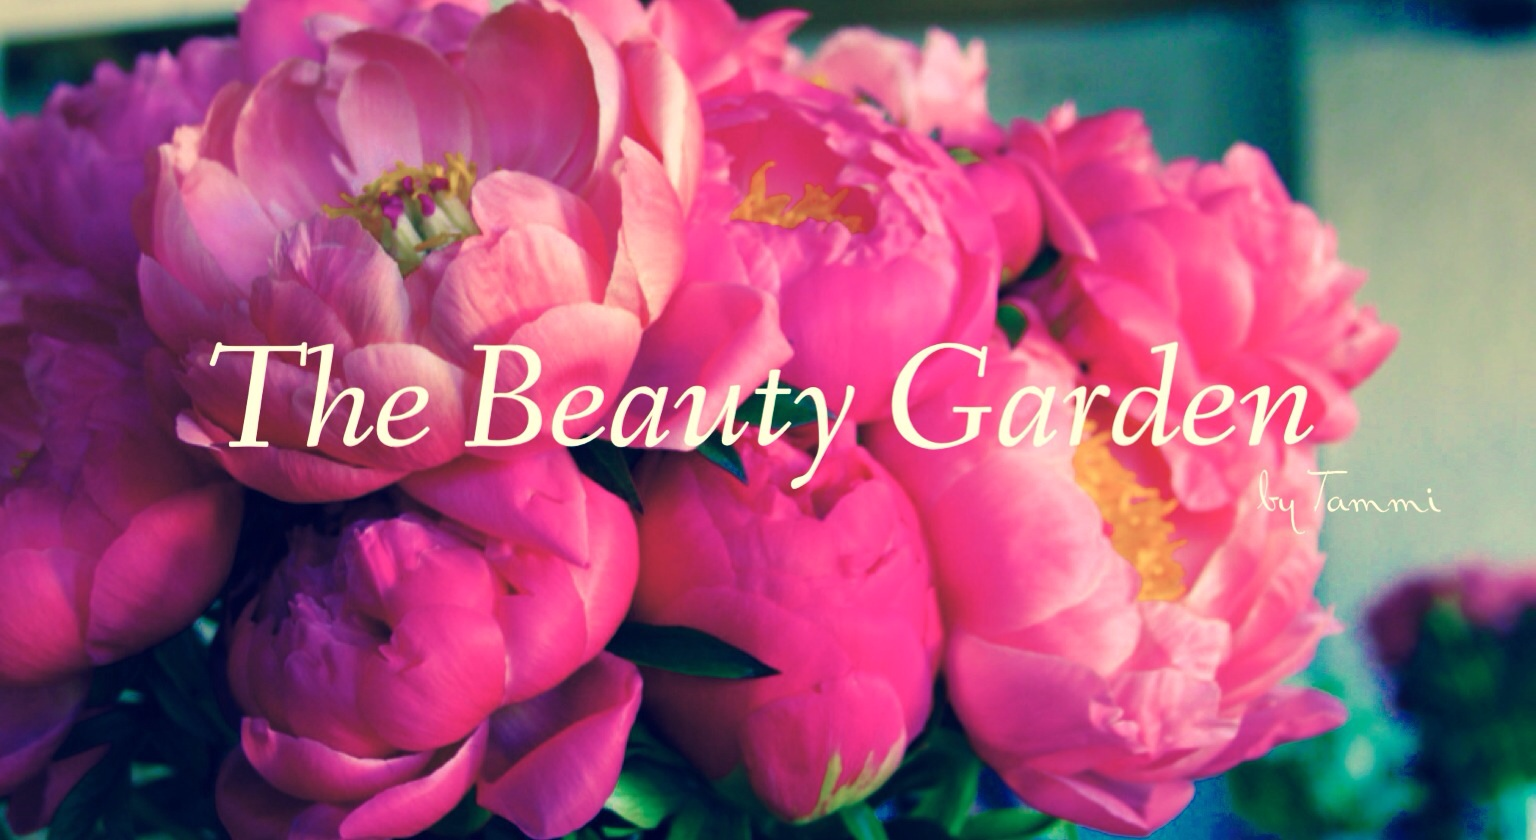 The Beauty Garden